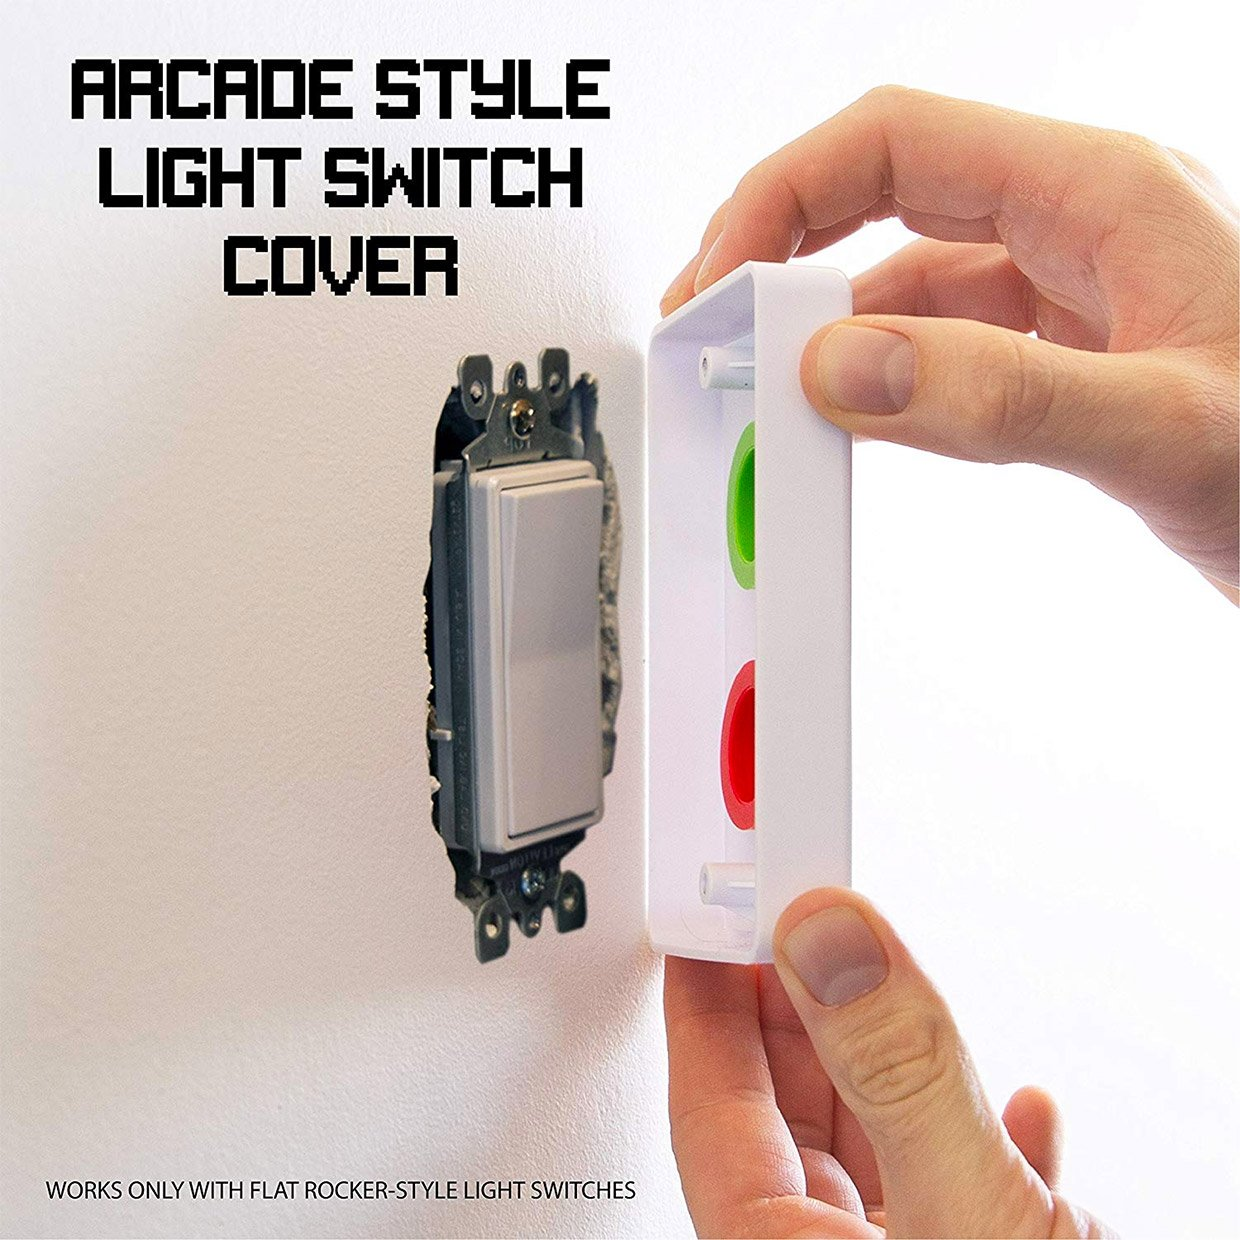 Arcade Light Switch Covers